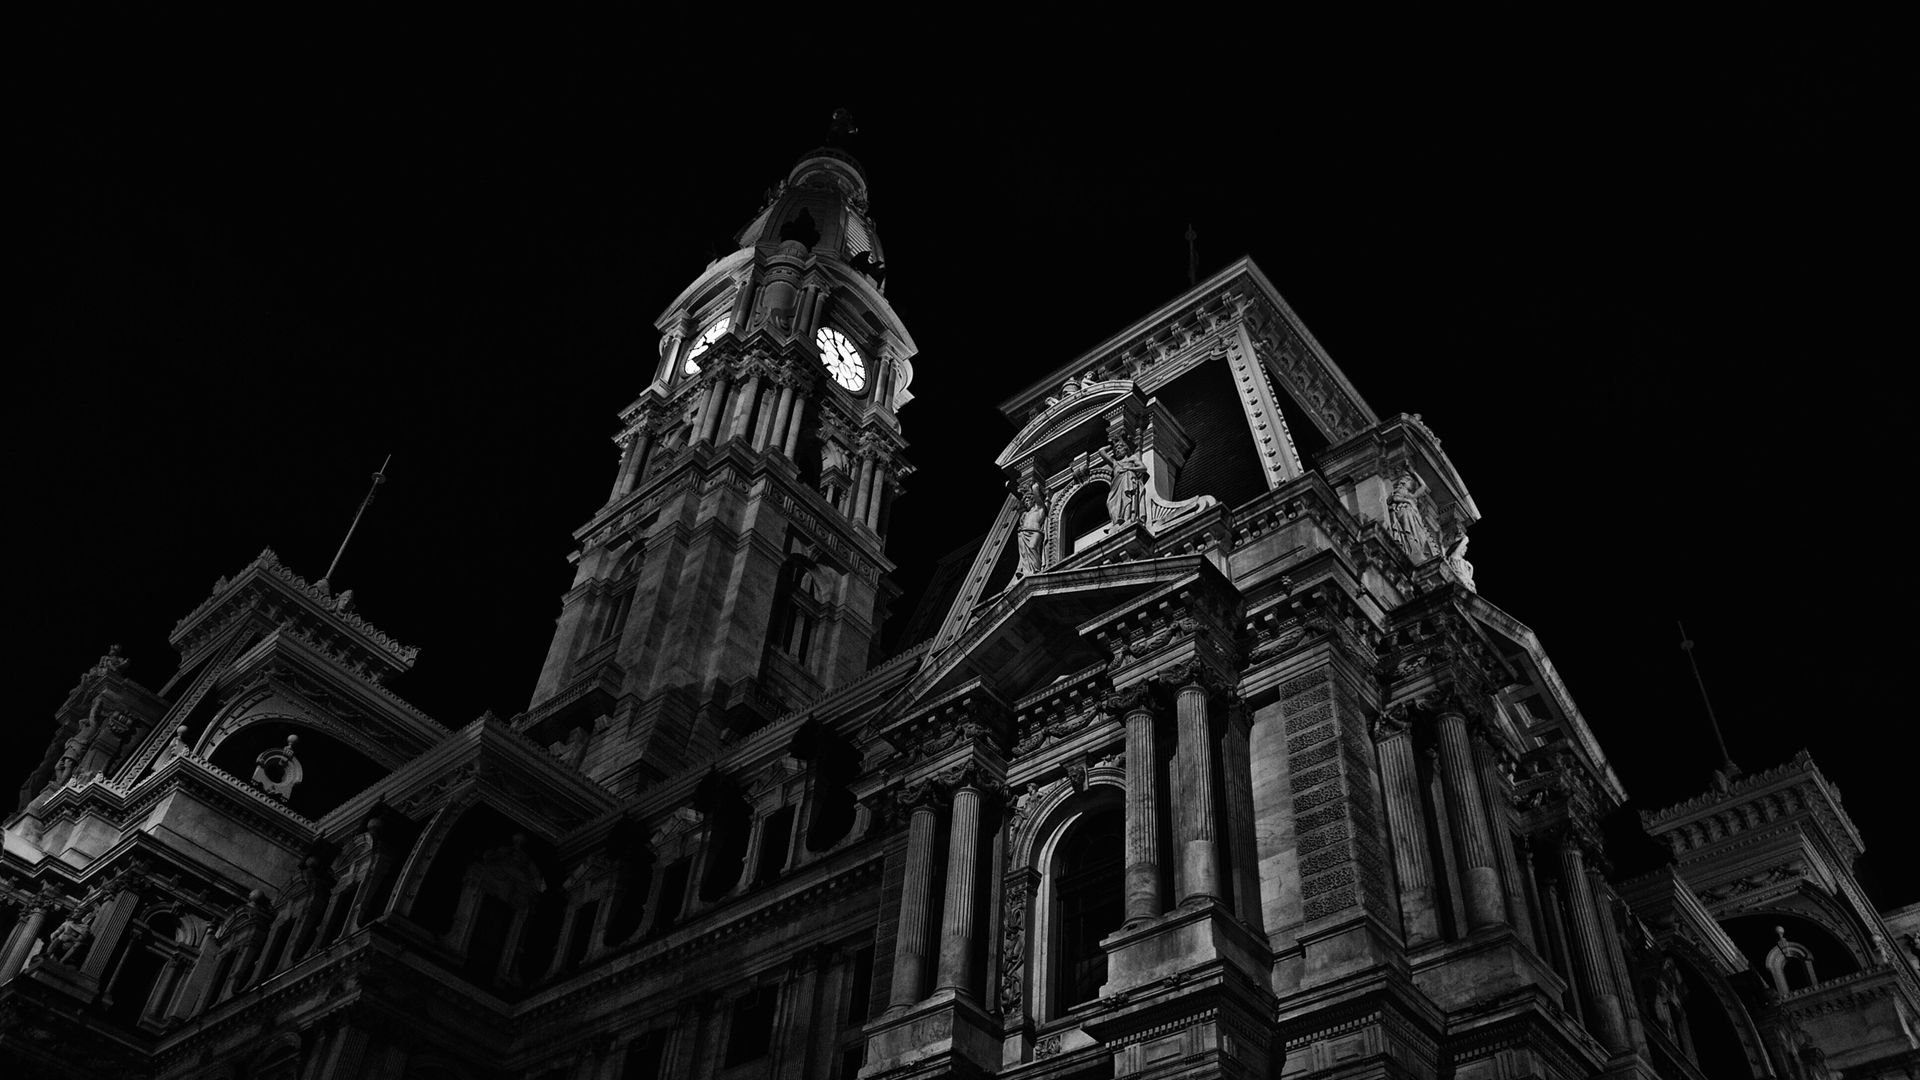 Black Pictures Black And White Hd Building Full P In 1920x1080